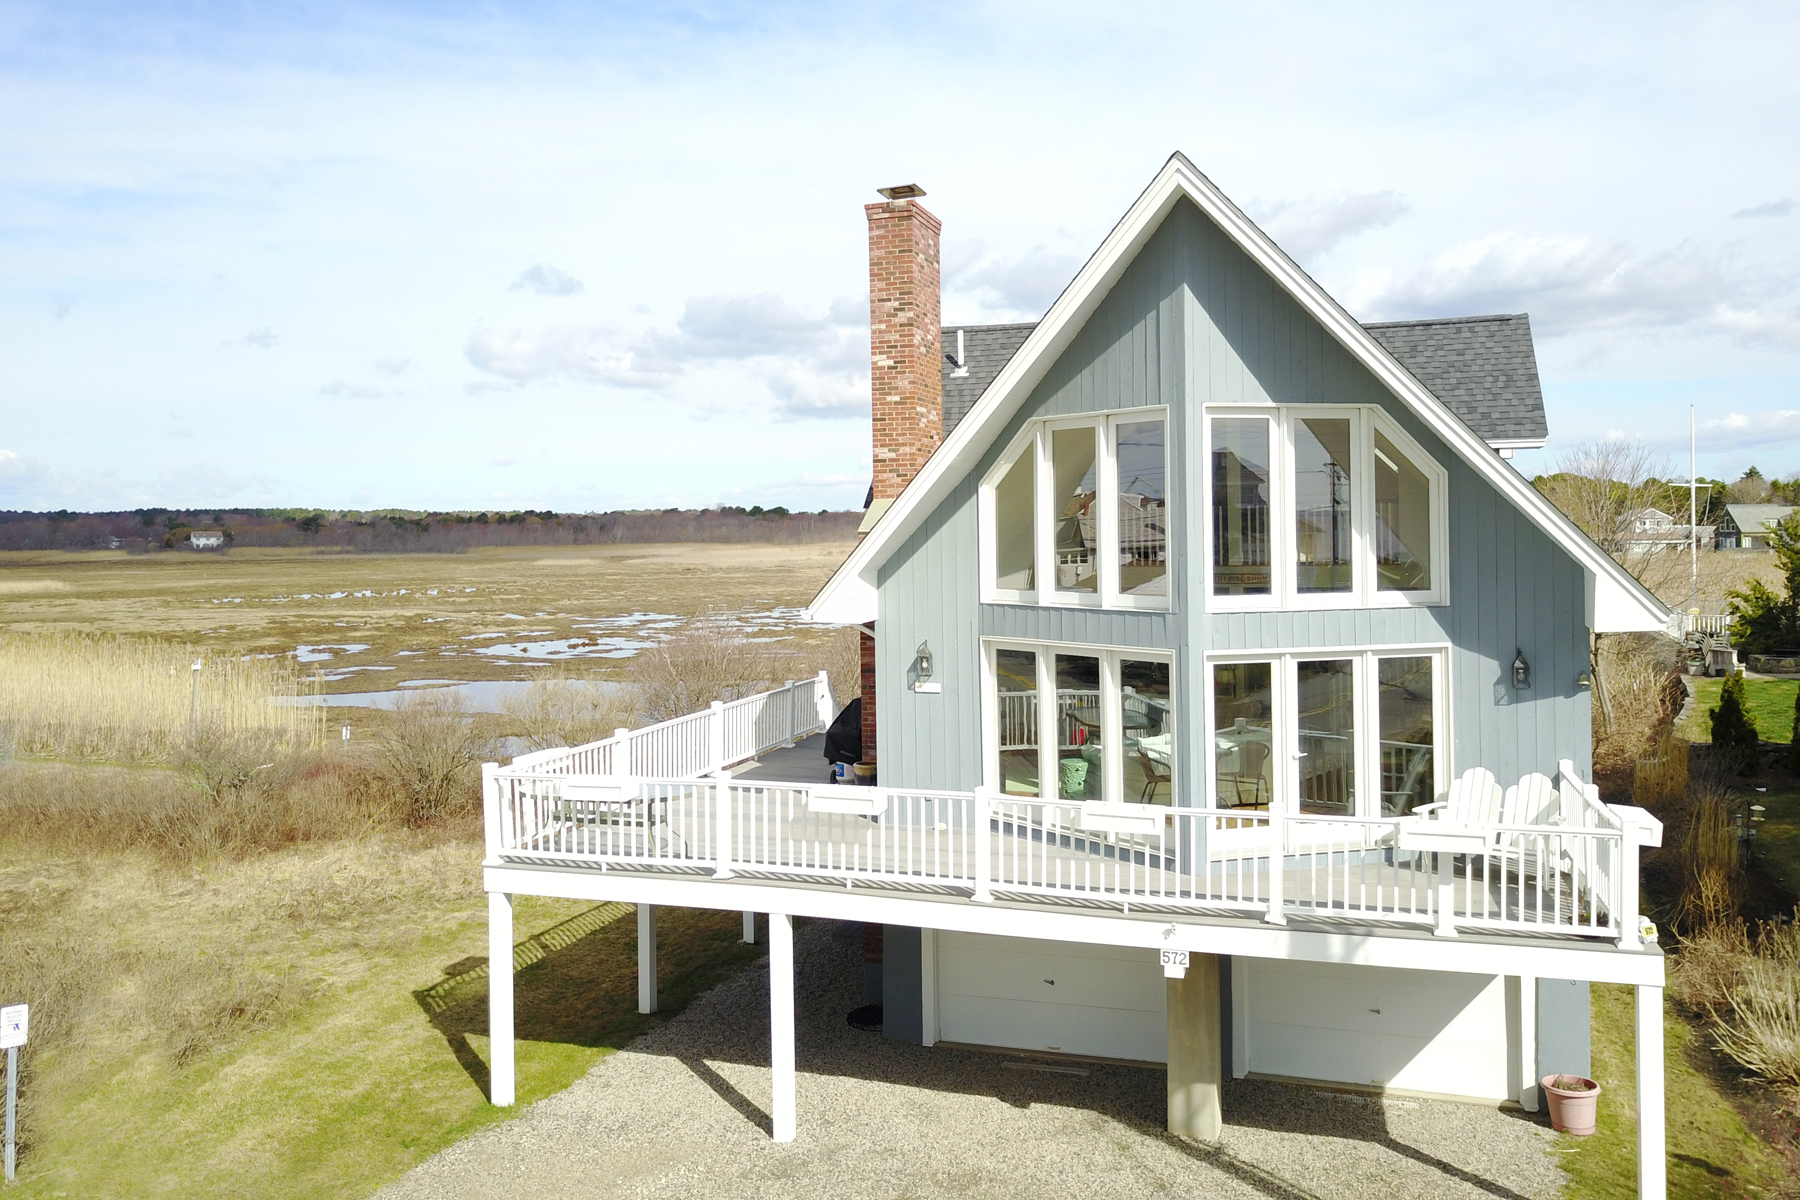 Single Family Home for Sale at Stunning Ocean View Contemporary in Moody 572 Ocean Avenue Wells, Maine, 04090 United States